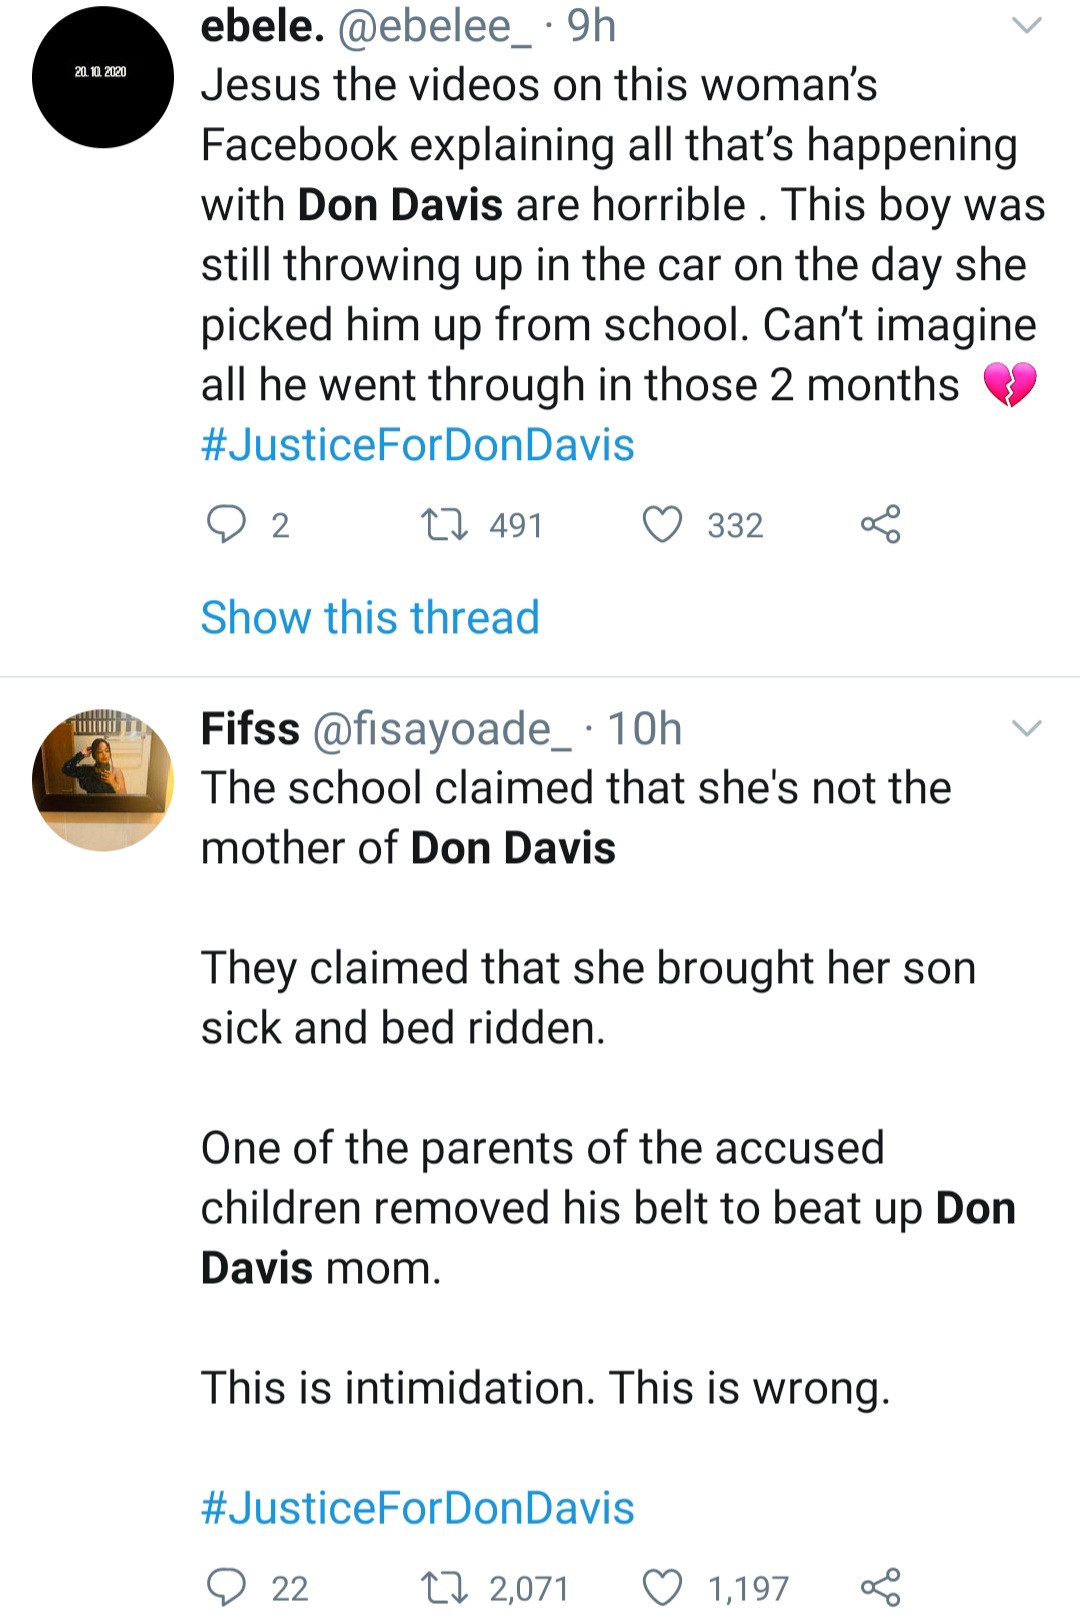 #JusticeForDonDavis trends as mother of boy allegedly molested in Deeper life school reveals he